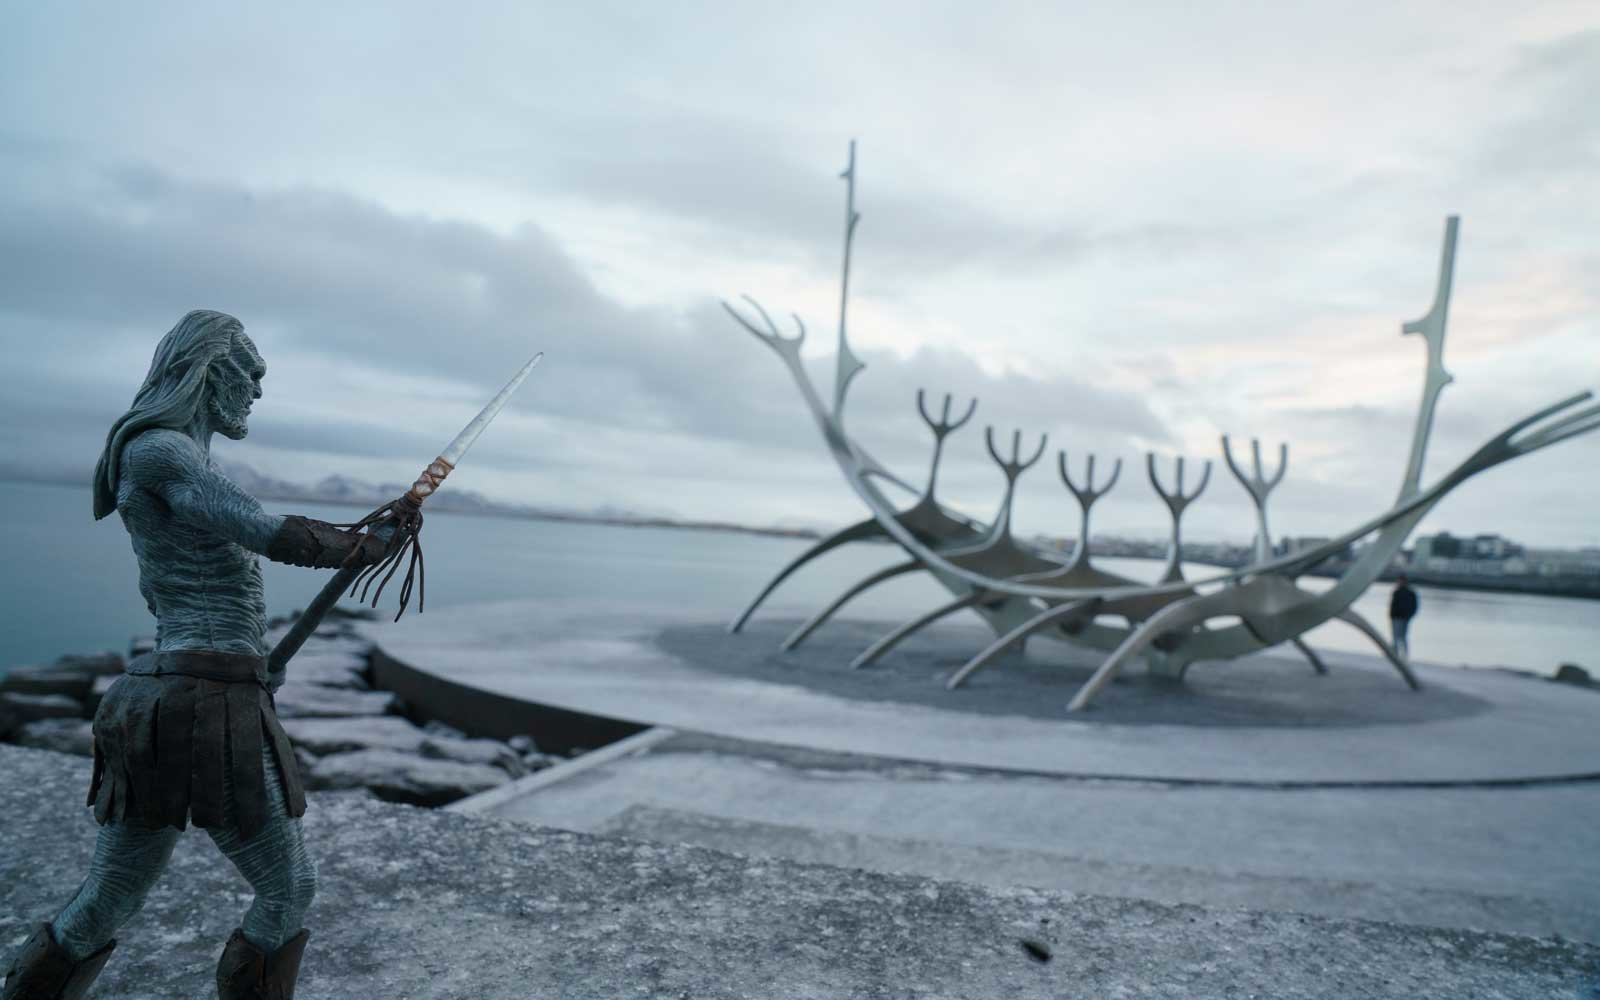 White Walker figurine in Iceland, near a viking ship sculpture